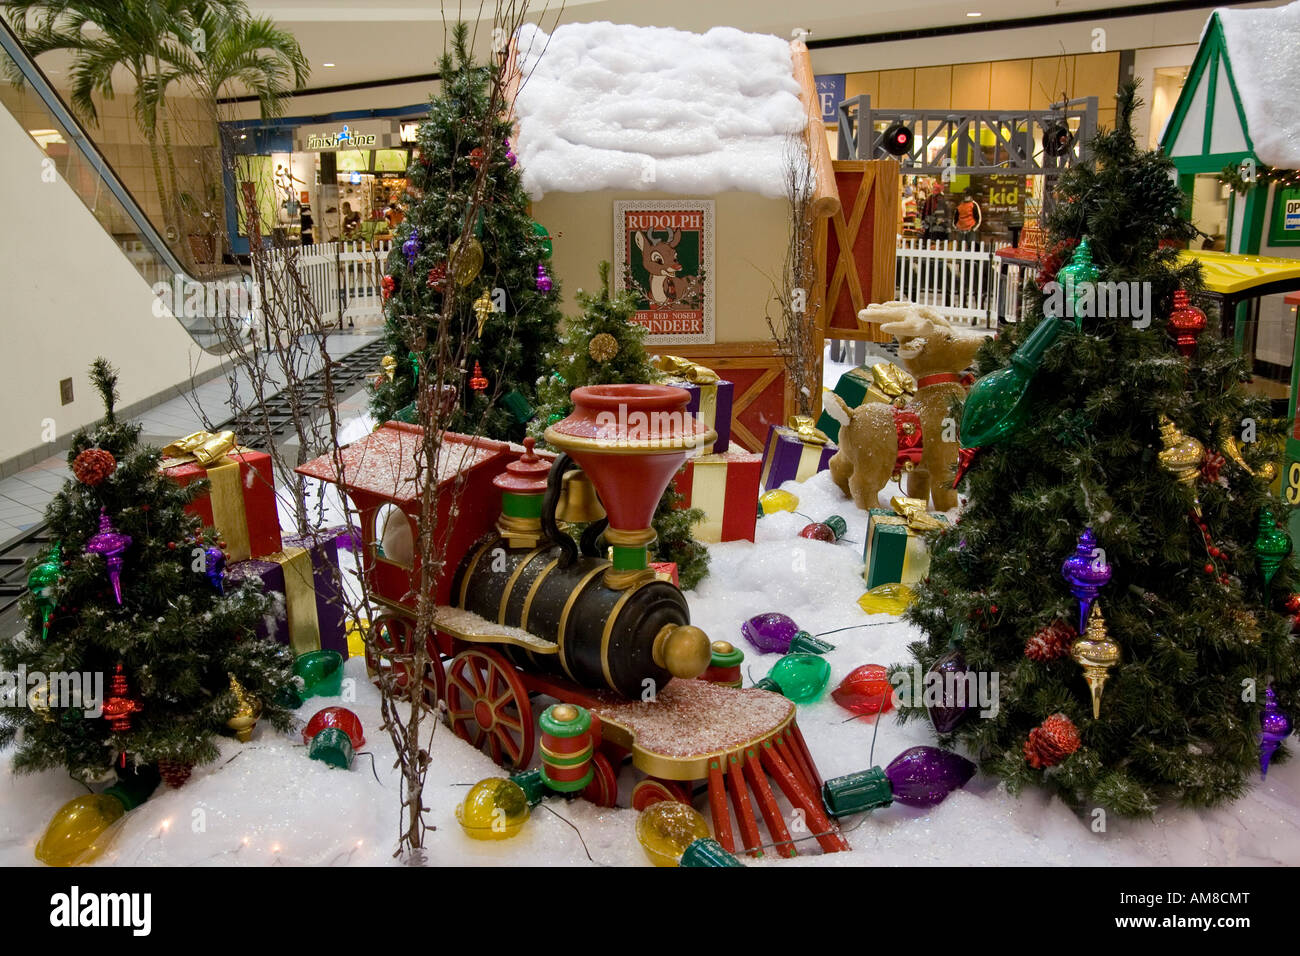 Christmas Shopping Mall Usa Stock Photos & Christmas Shopping Mall ...